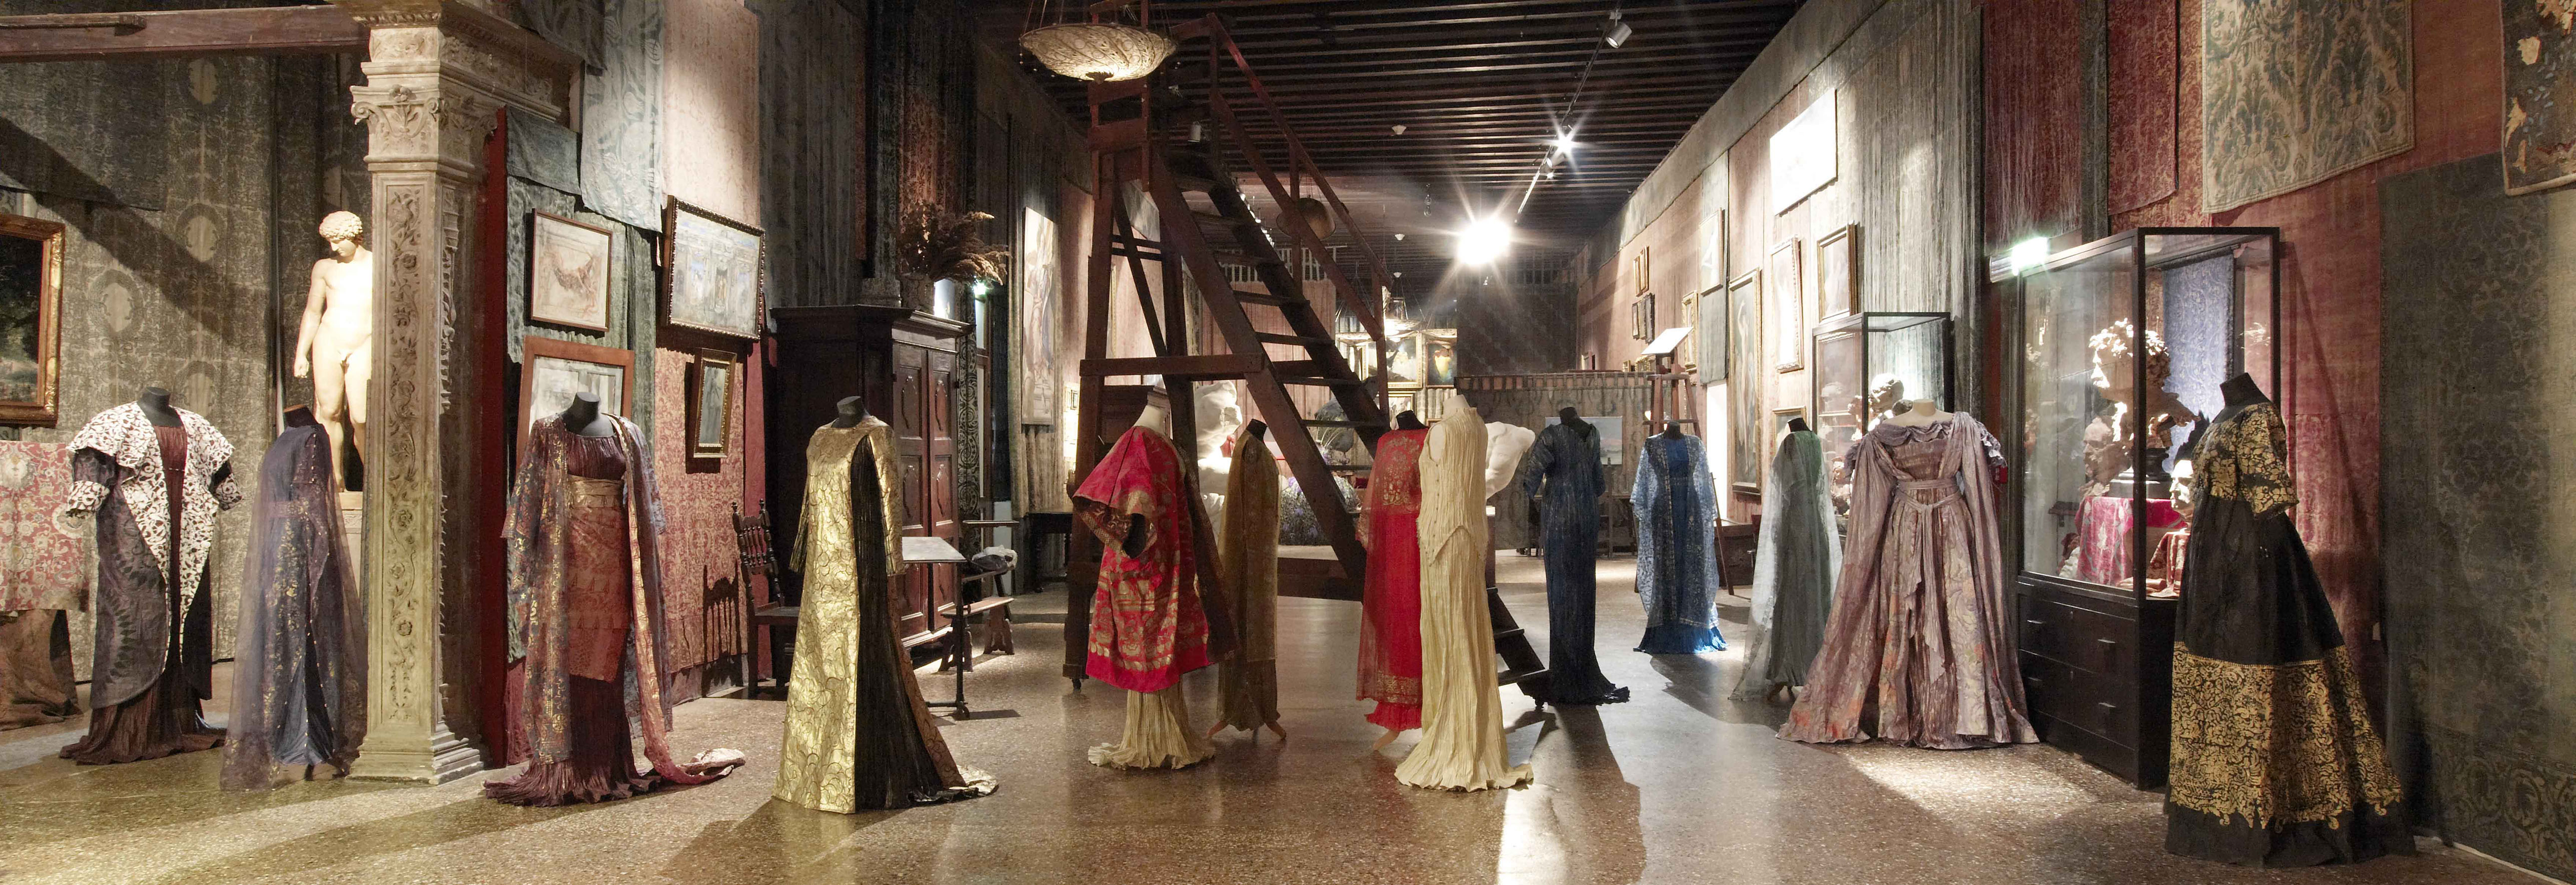 The Exhibition Palazzo Fortuny